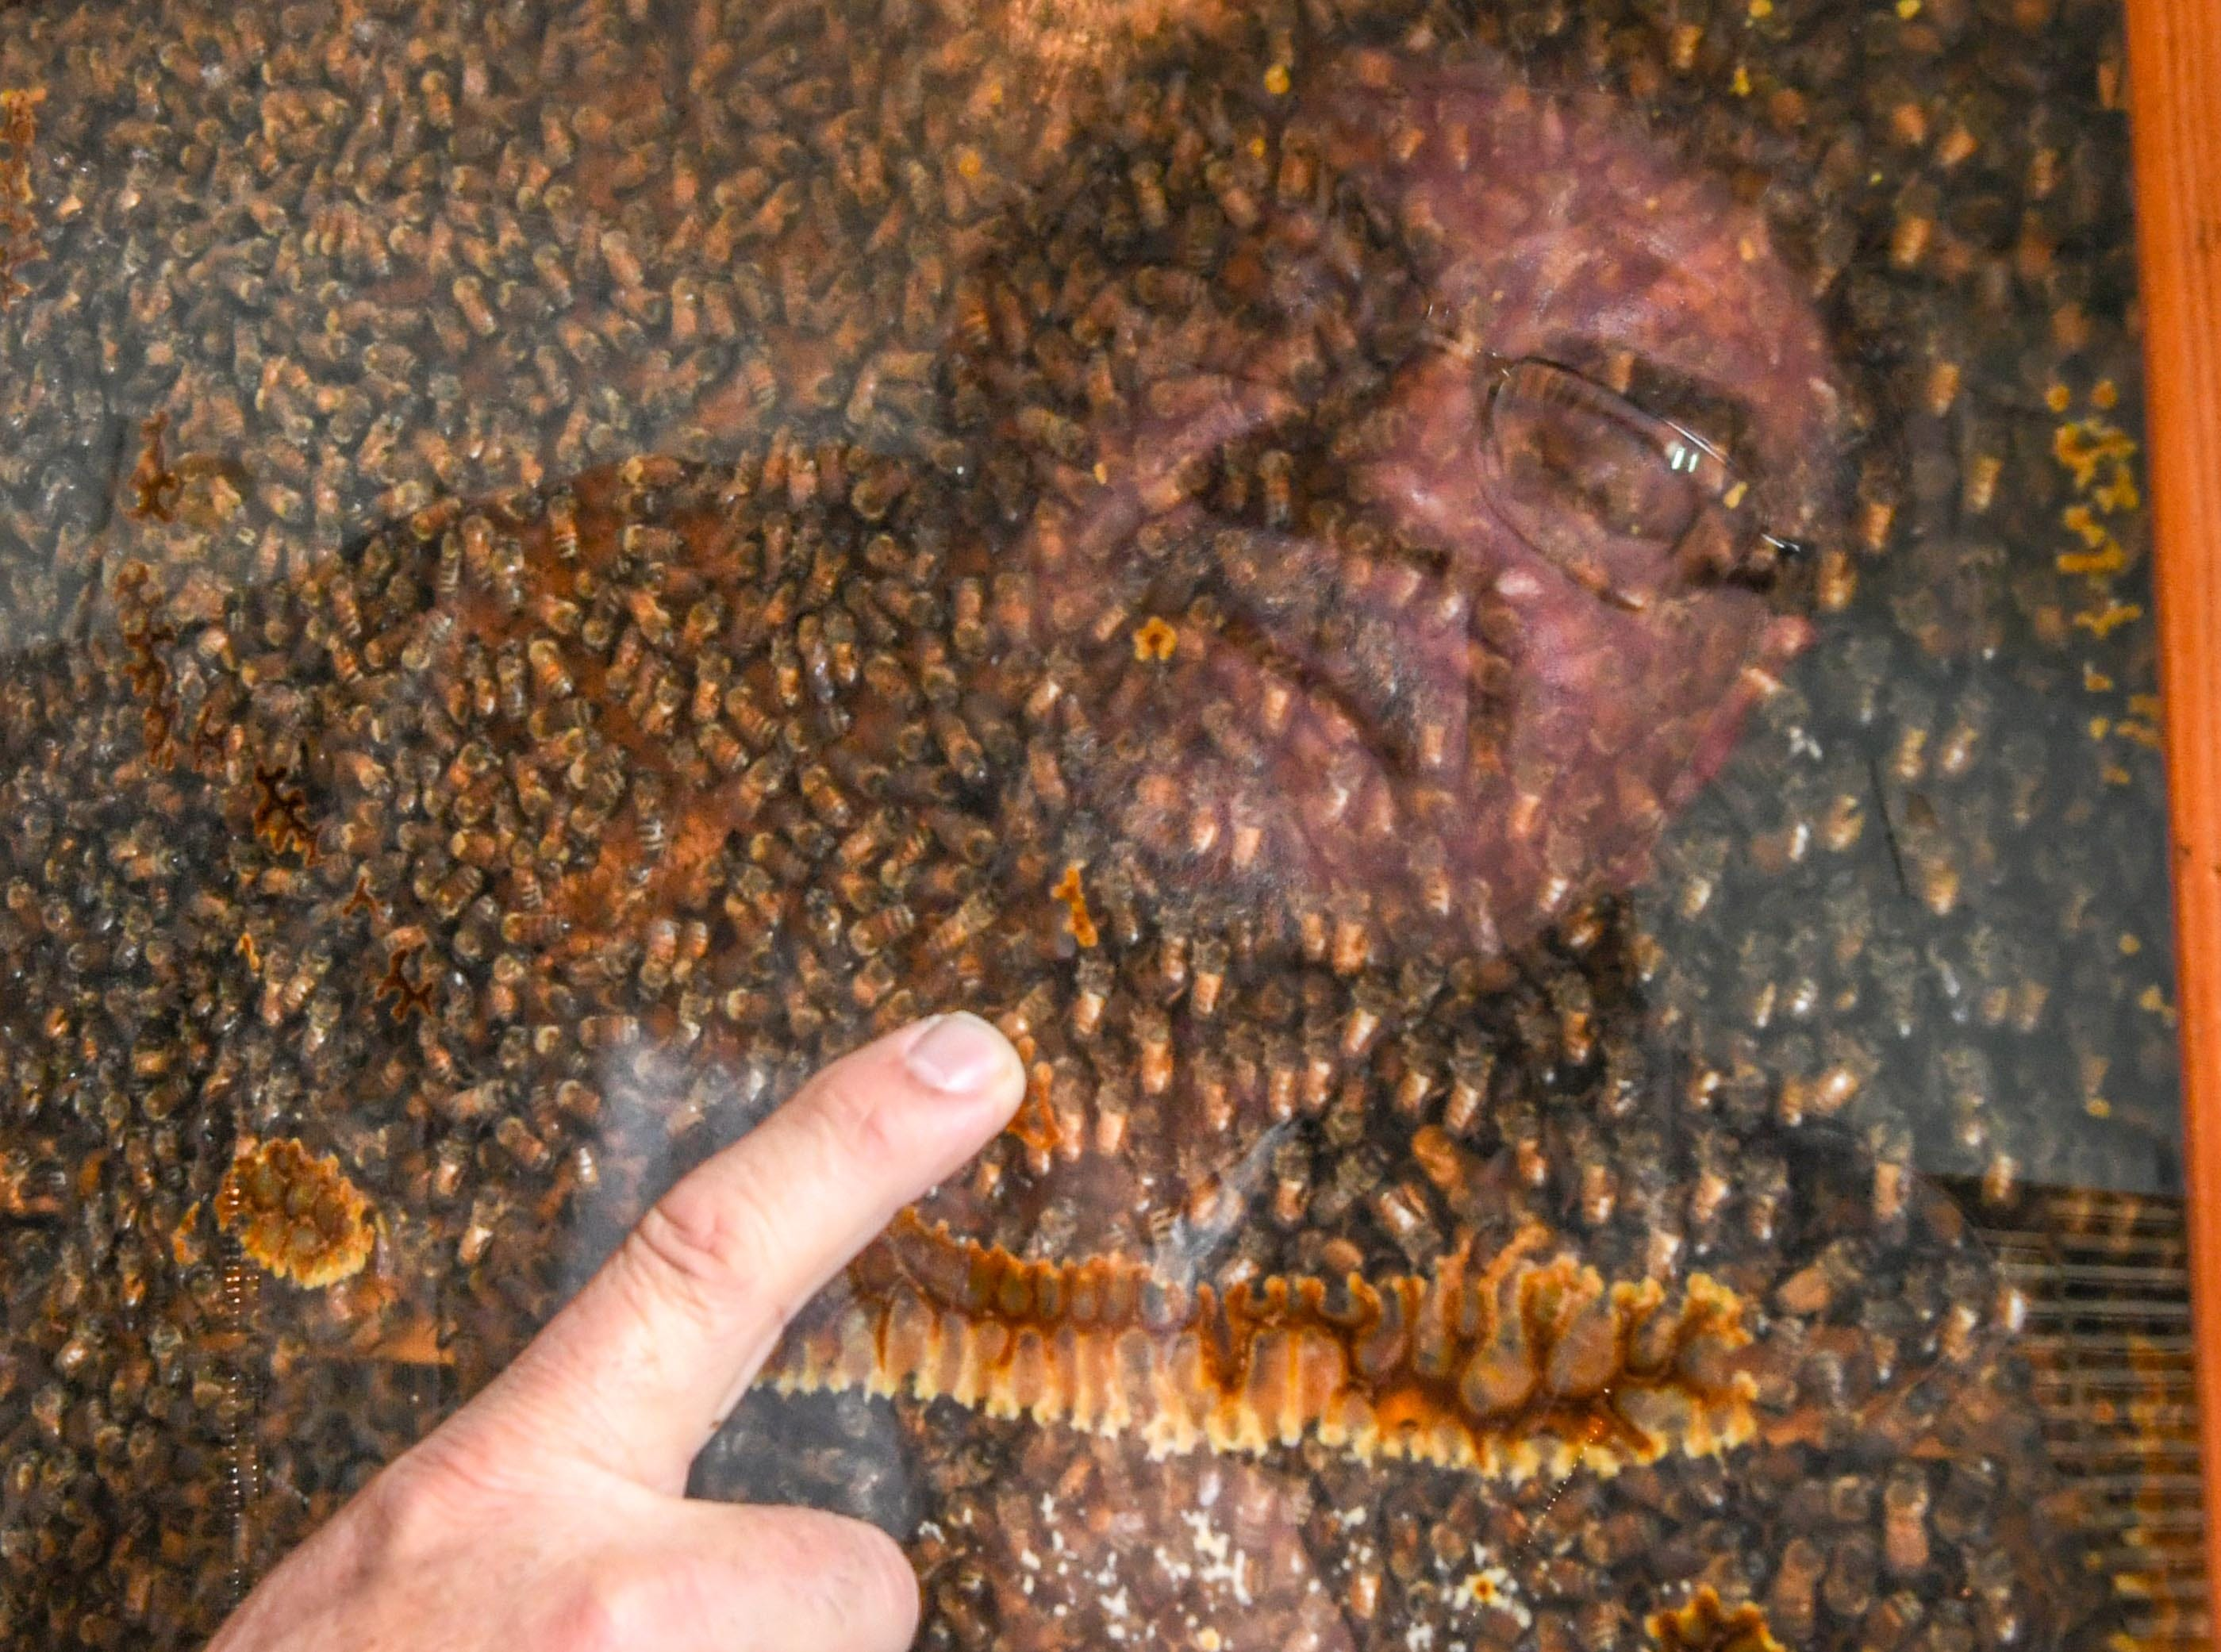 Kerry Owen, owner of Bee Well Honey in Pickens shows a case of enclosed bees used for educational purposes at his main office Thursday.